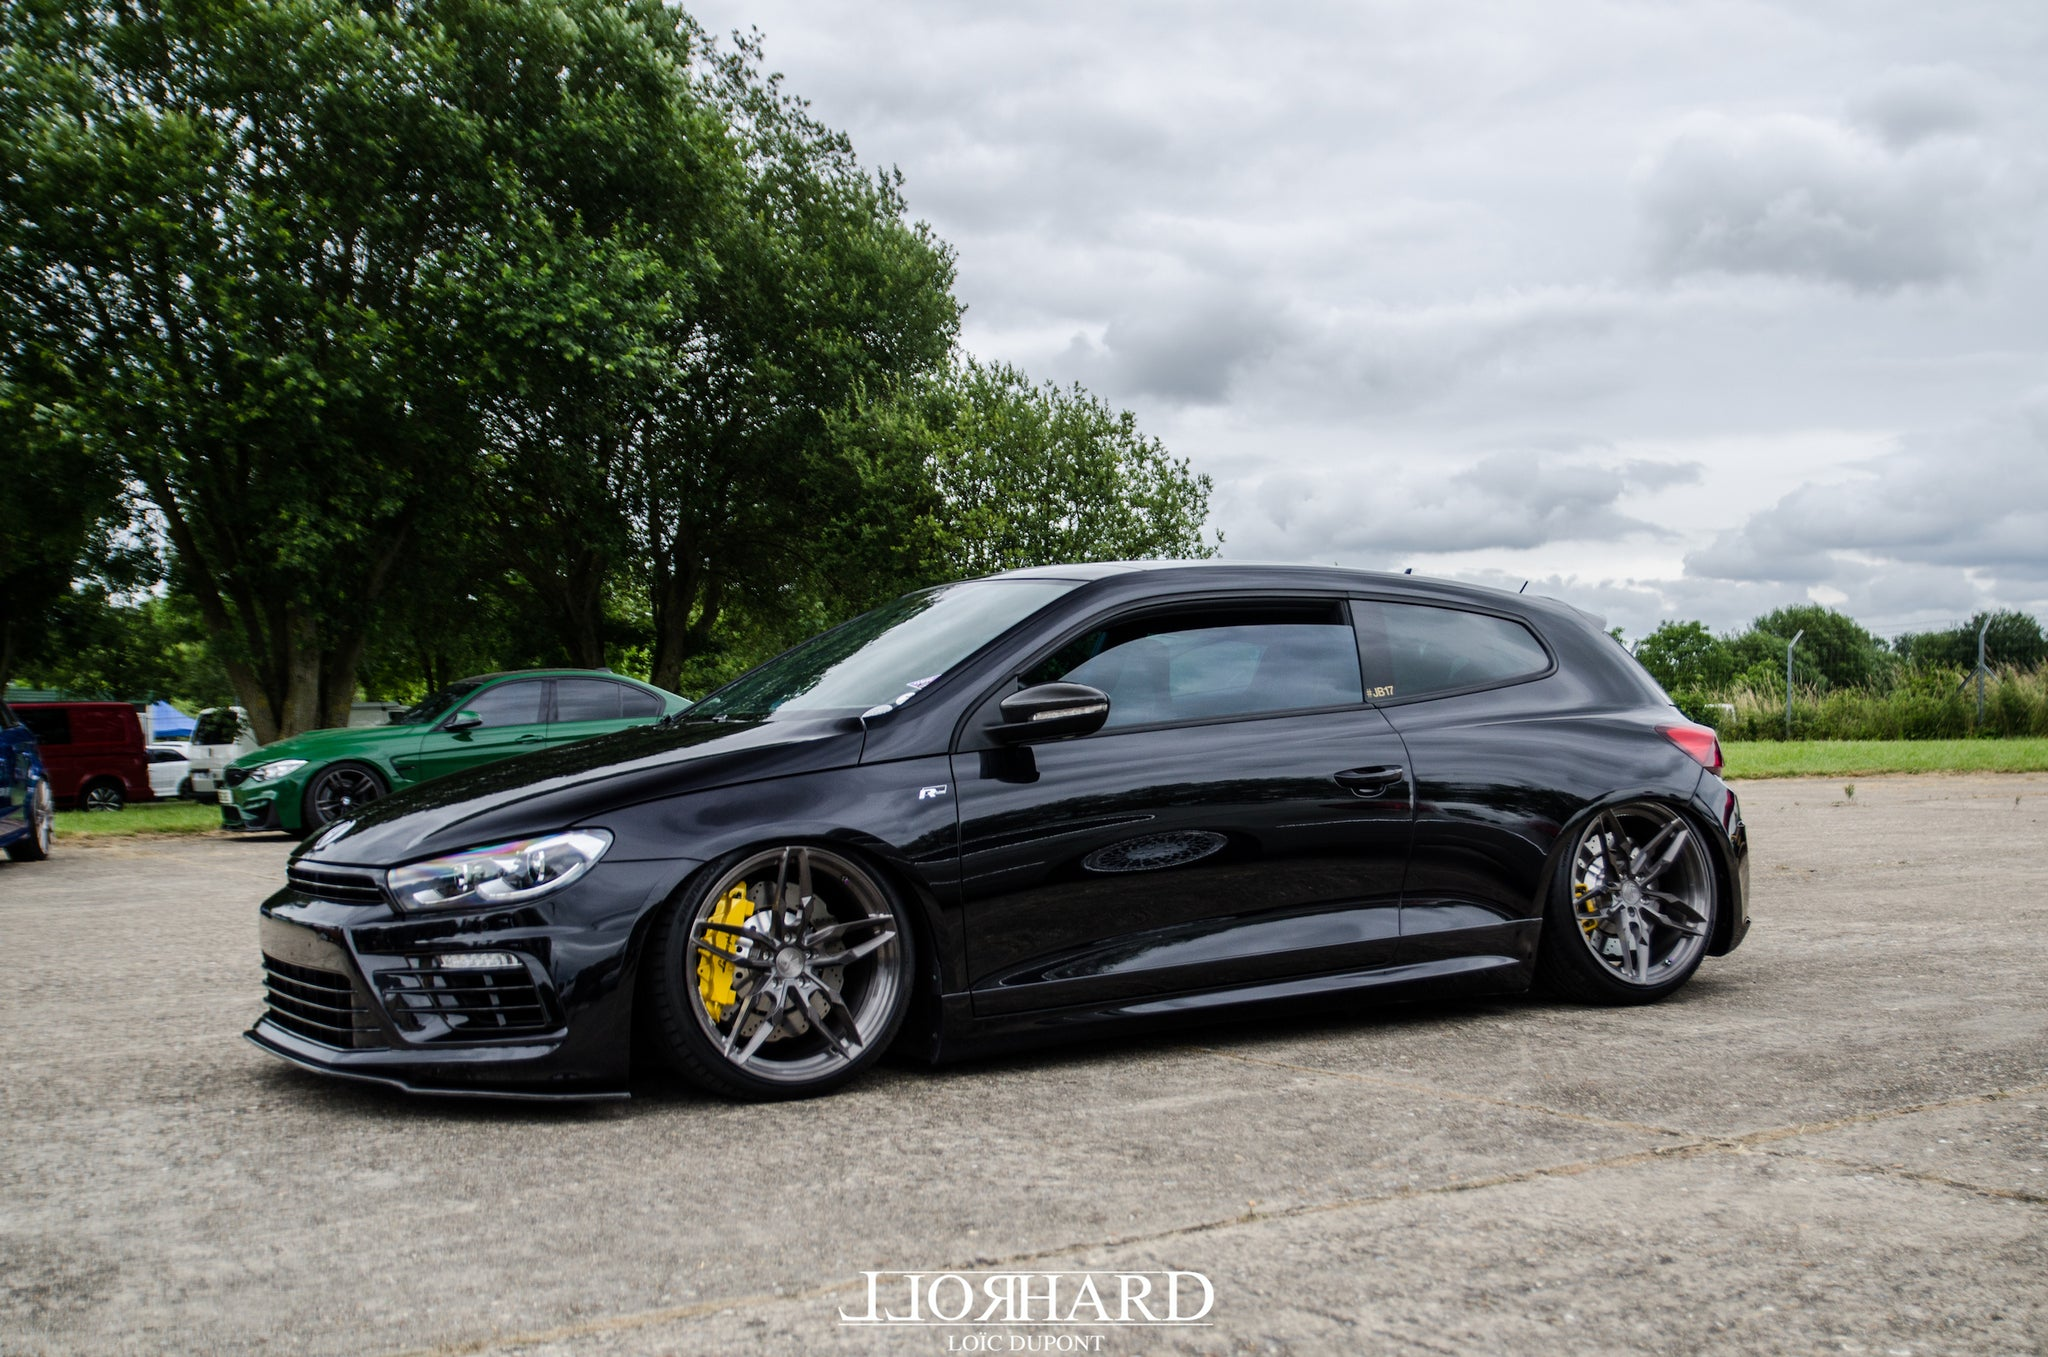 VW Days 2018 - RollHard Show Coverage, Modified VW Scene, Volkswagens, Low cars, BBS, Schmidt, Golf 1, Golf 2, corrado, Performance VW, PVW magazine